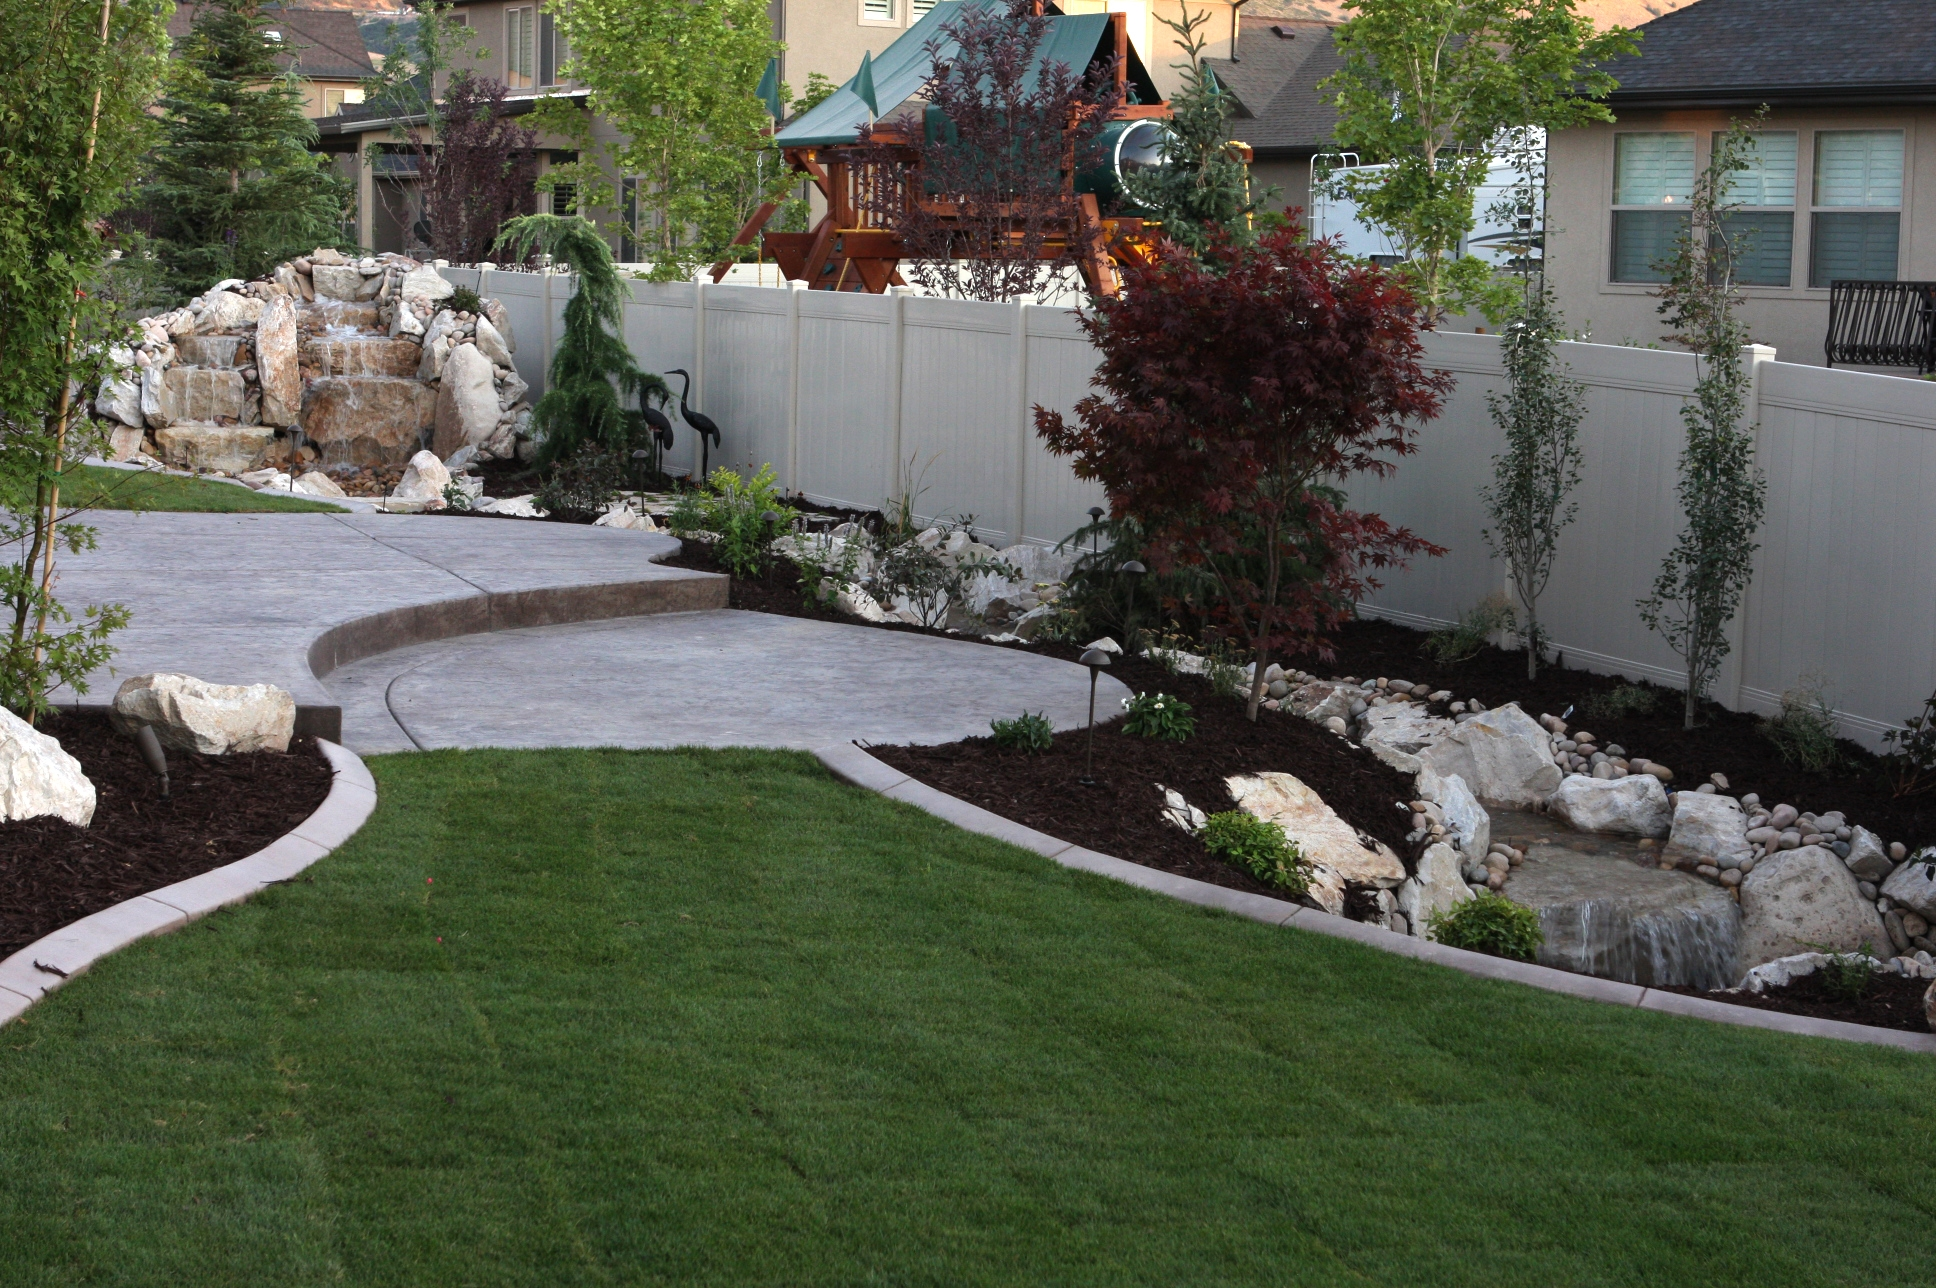 Backyard Design Companies backyard design ideas backyard design companies amazing concrete patio concrete patio design ideas and cost landscaping Our Specialties Include